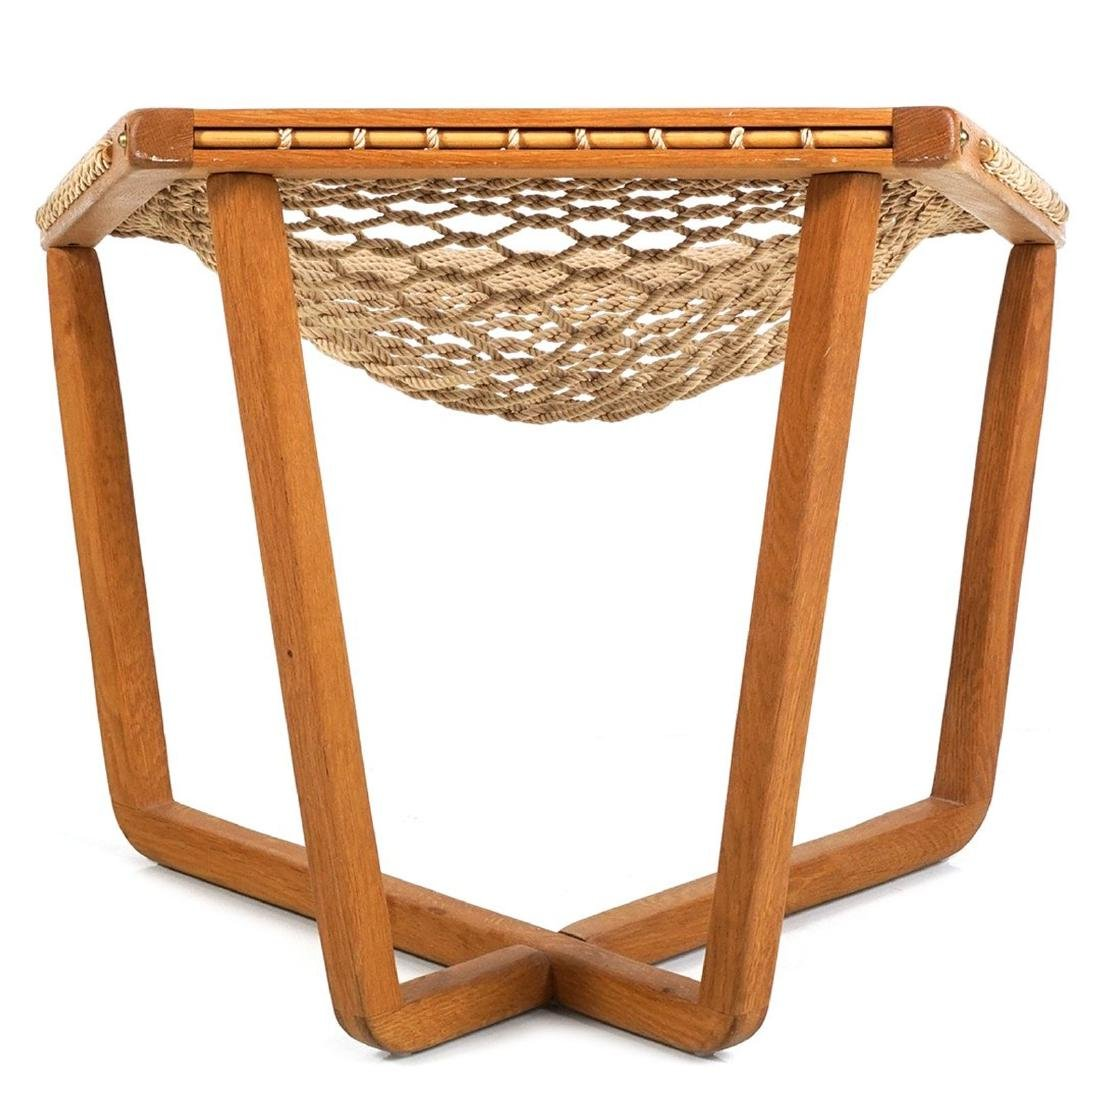 Woven Sling Lounge Chair - 4